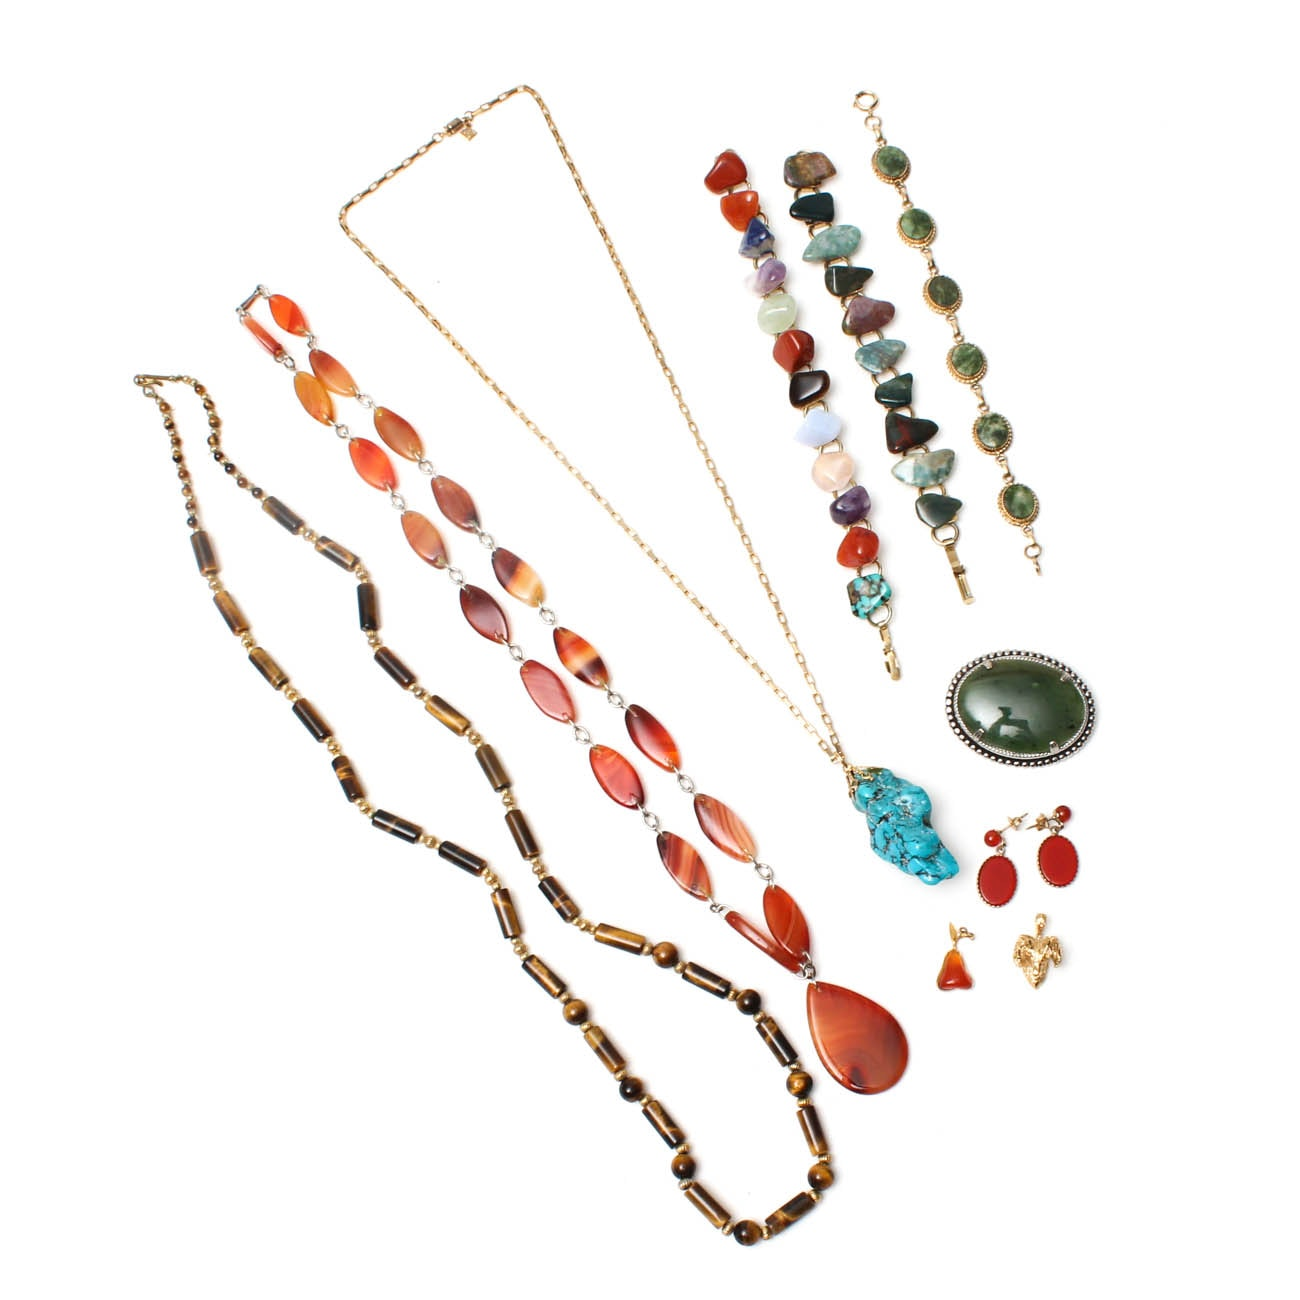 Selection of Costume Jewelry with Gemstones